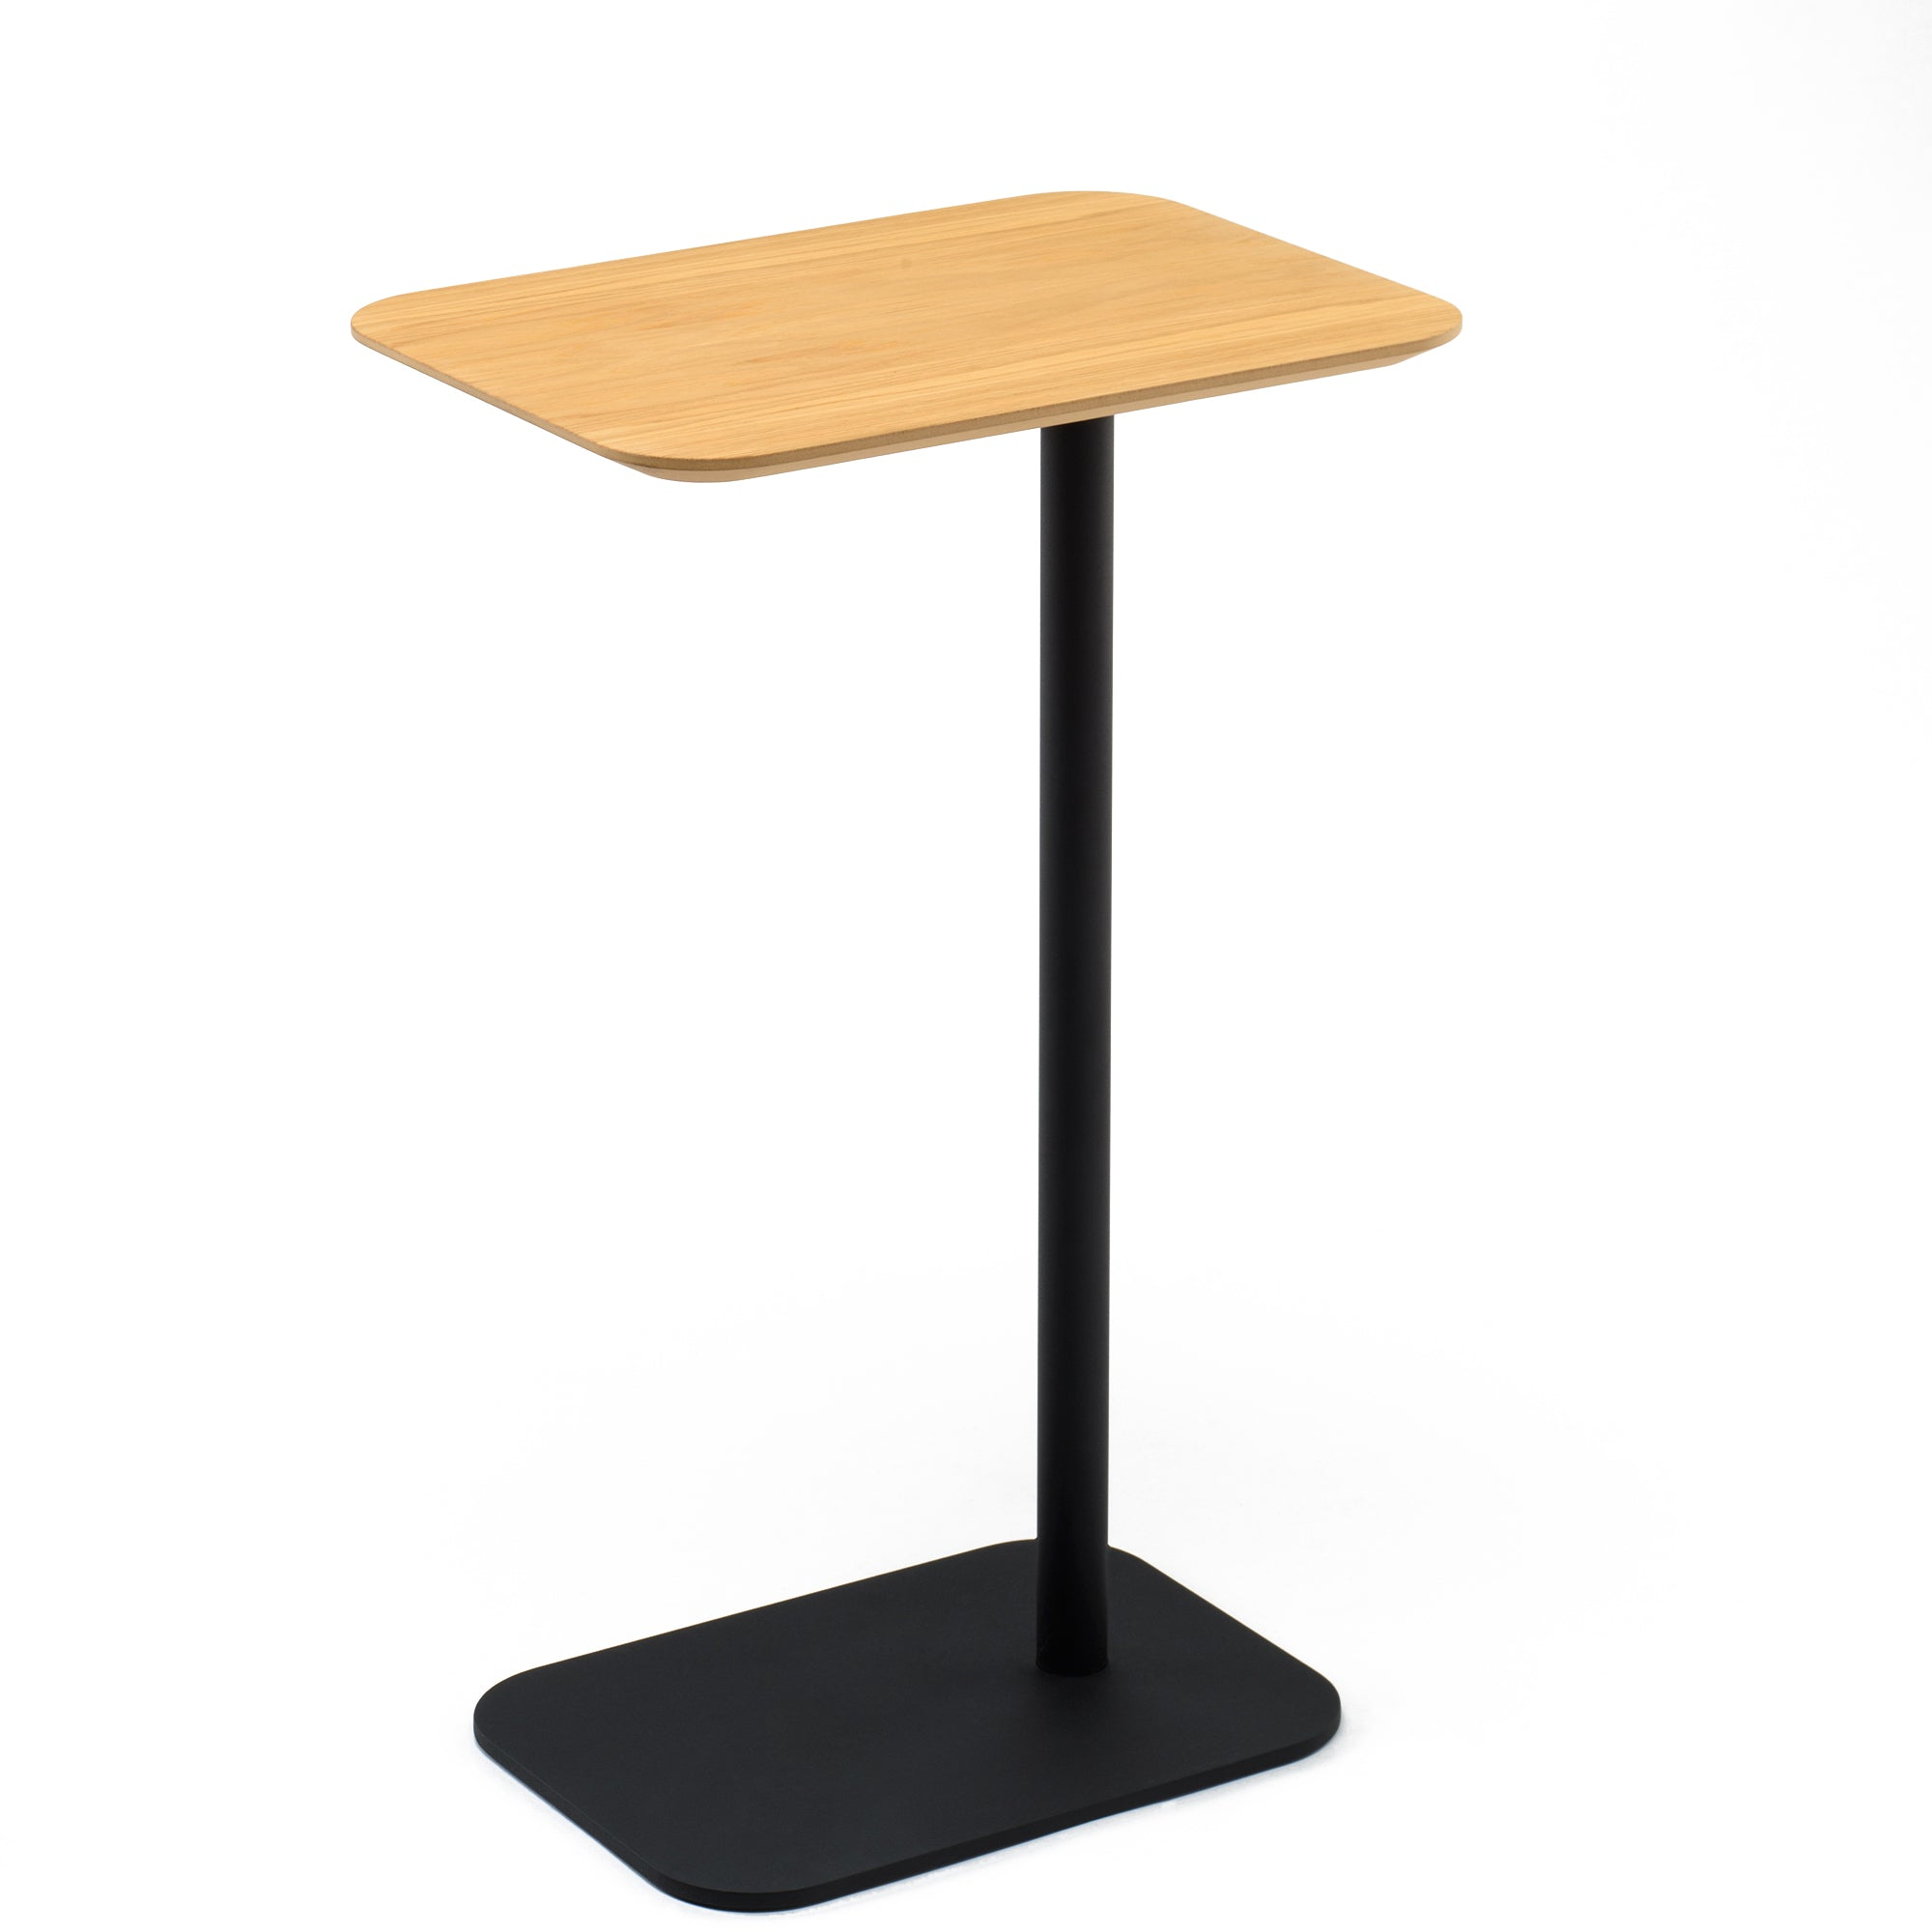 MG Side Tables: MG 2